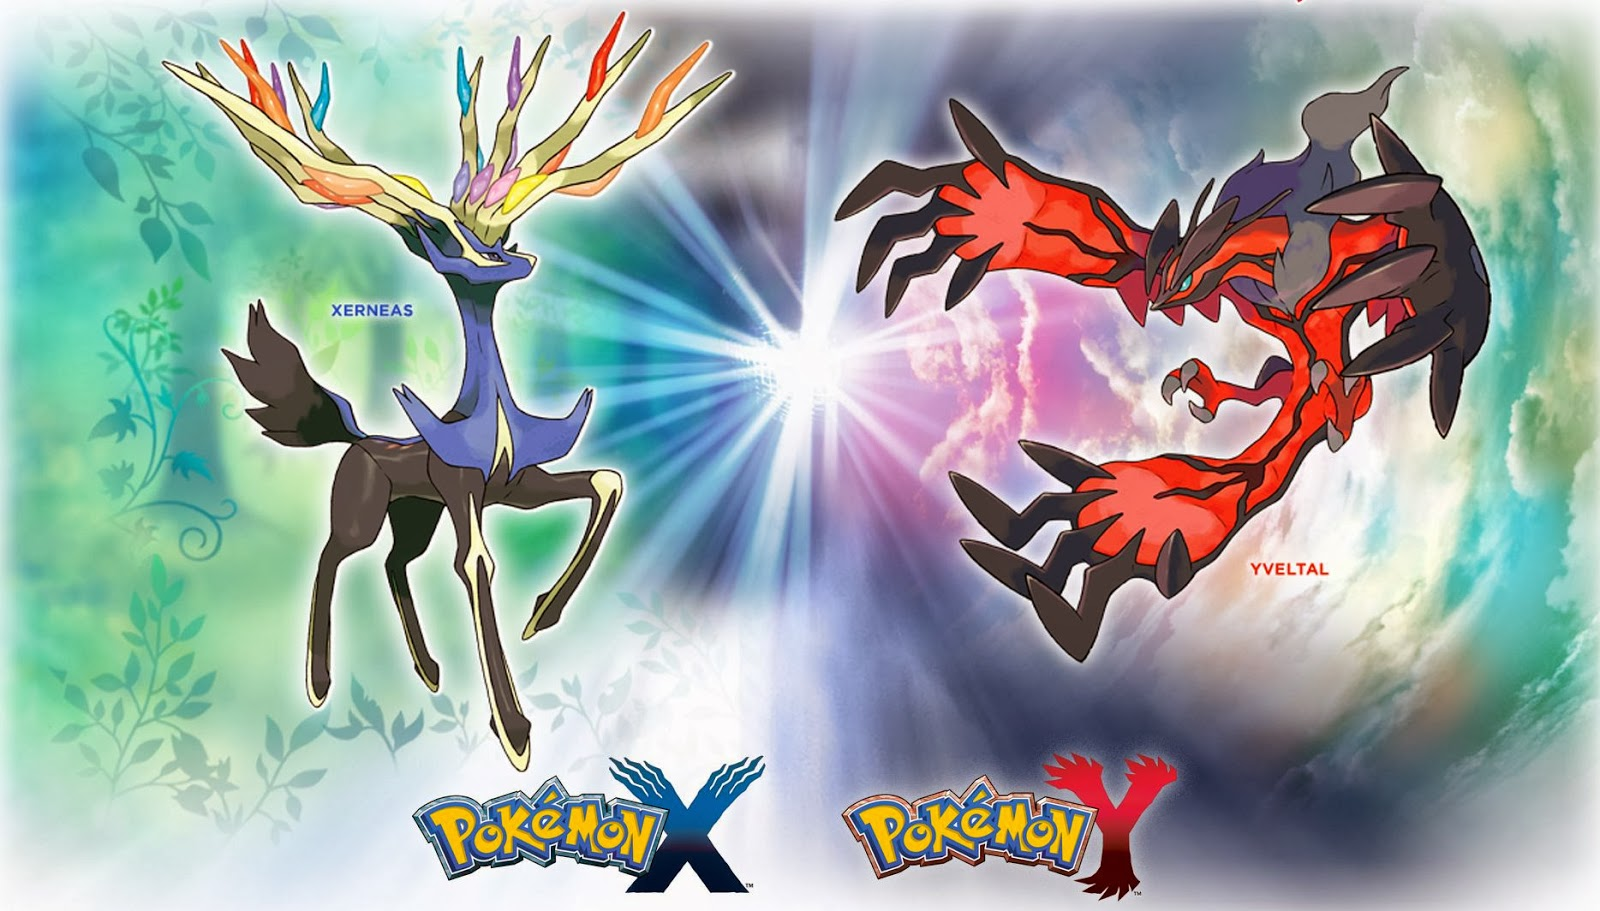 Most powerful Legendary Pokemon battle between Xerneas and Yveltal